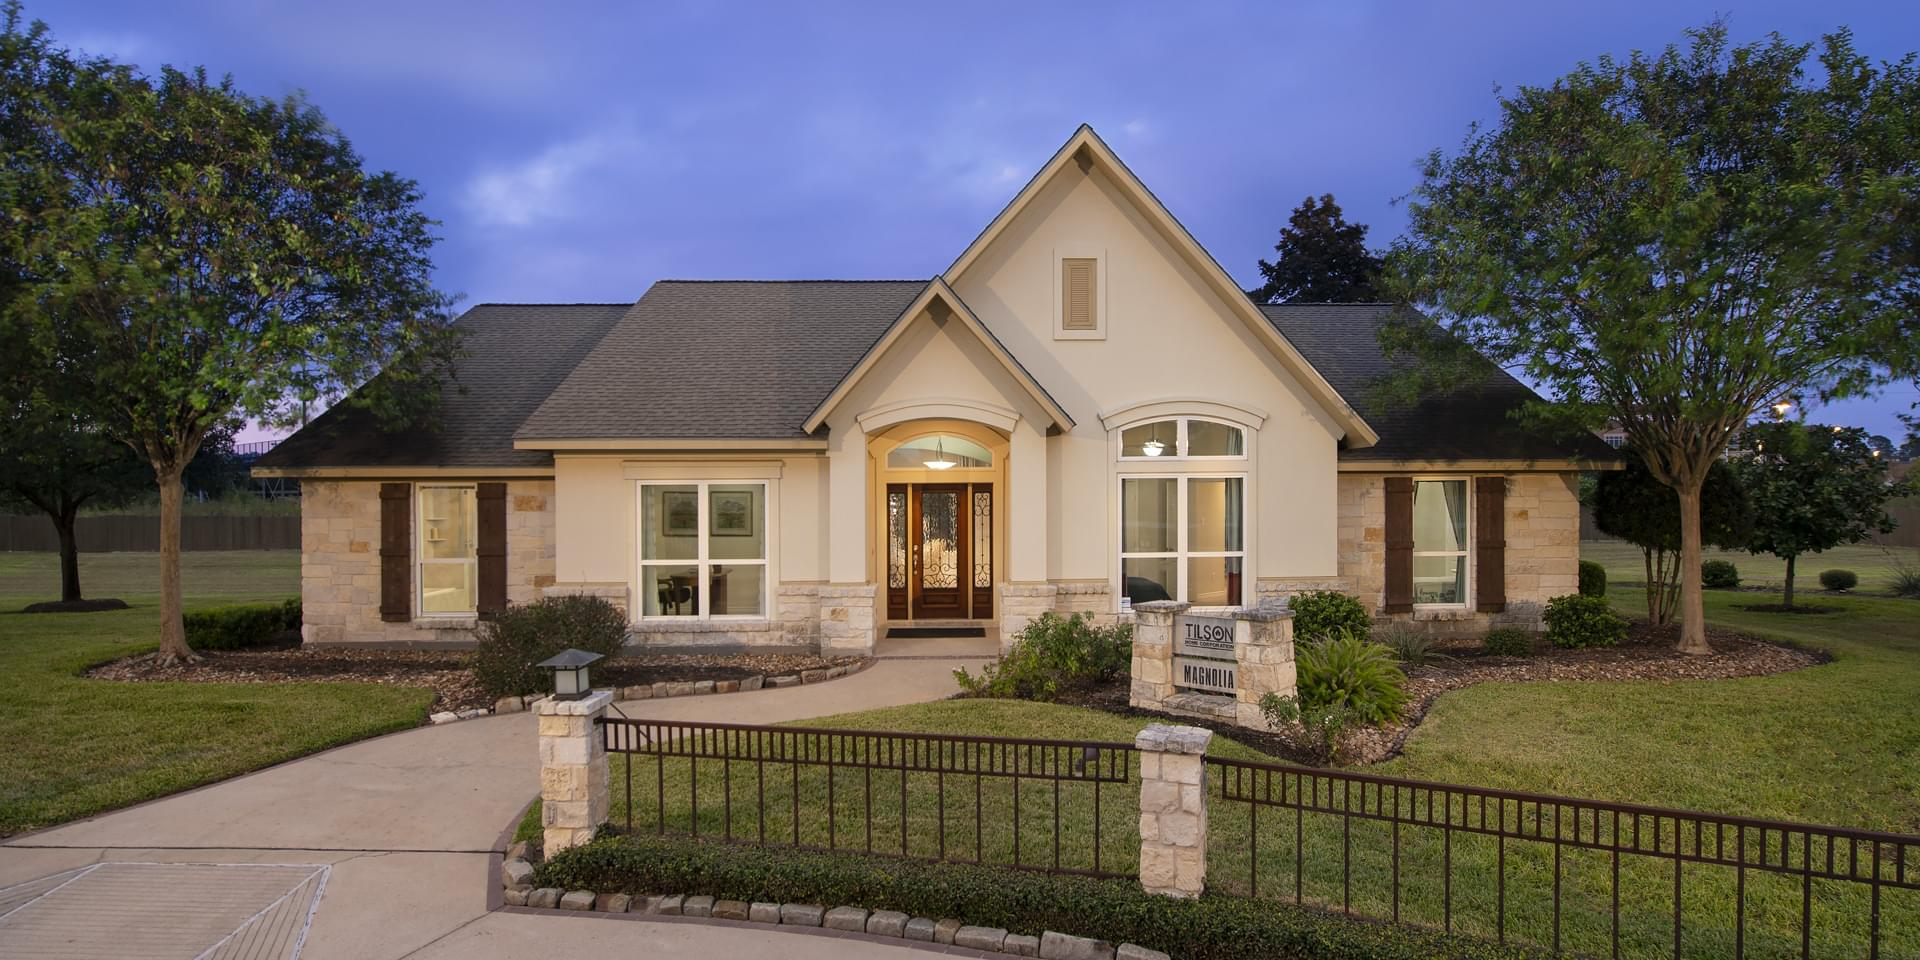 The Magnolia Custom Home Plan from Tilson Homes